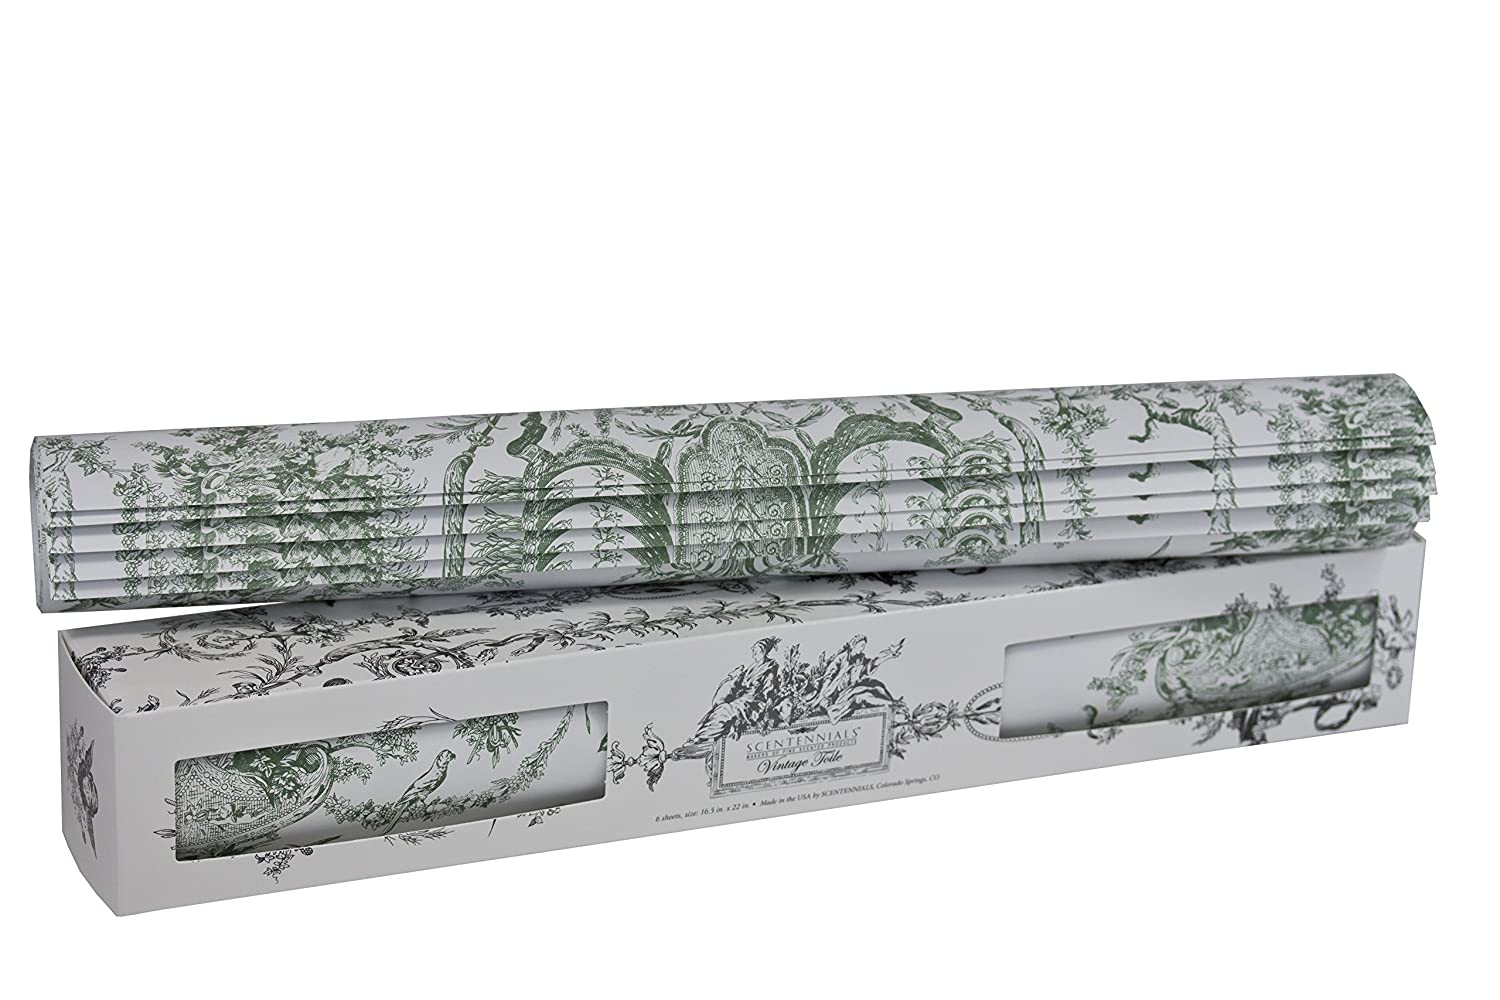 Vintage Toile Scented Drawer Liners From Scentennials (Green) Scentennials Products